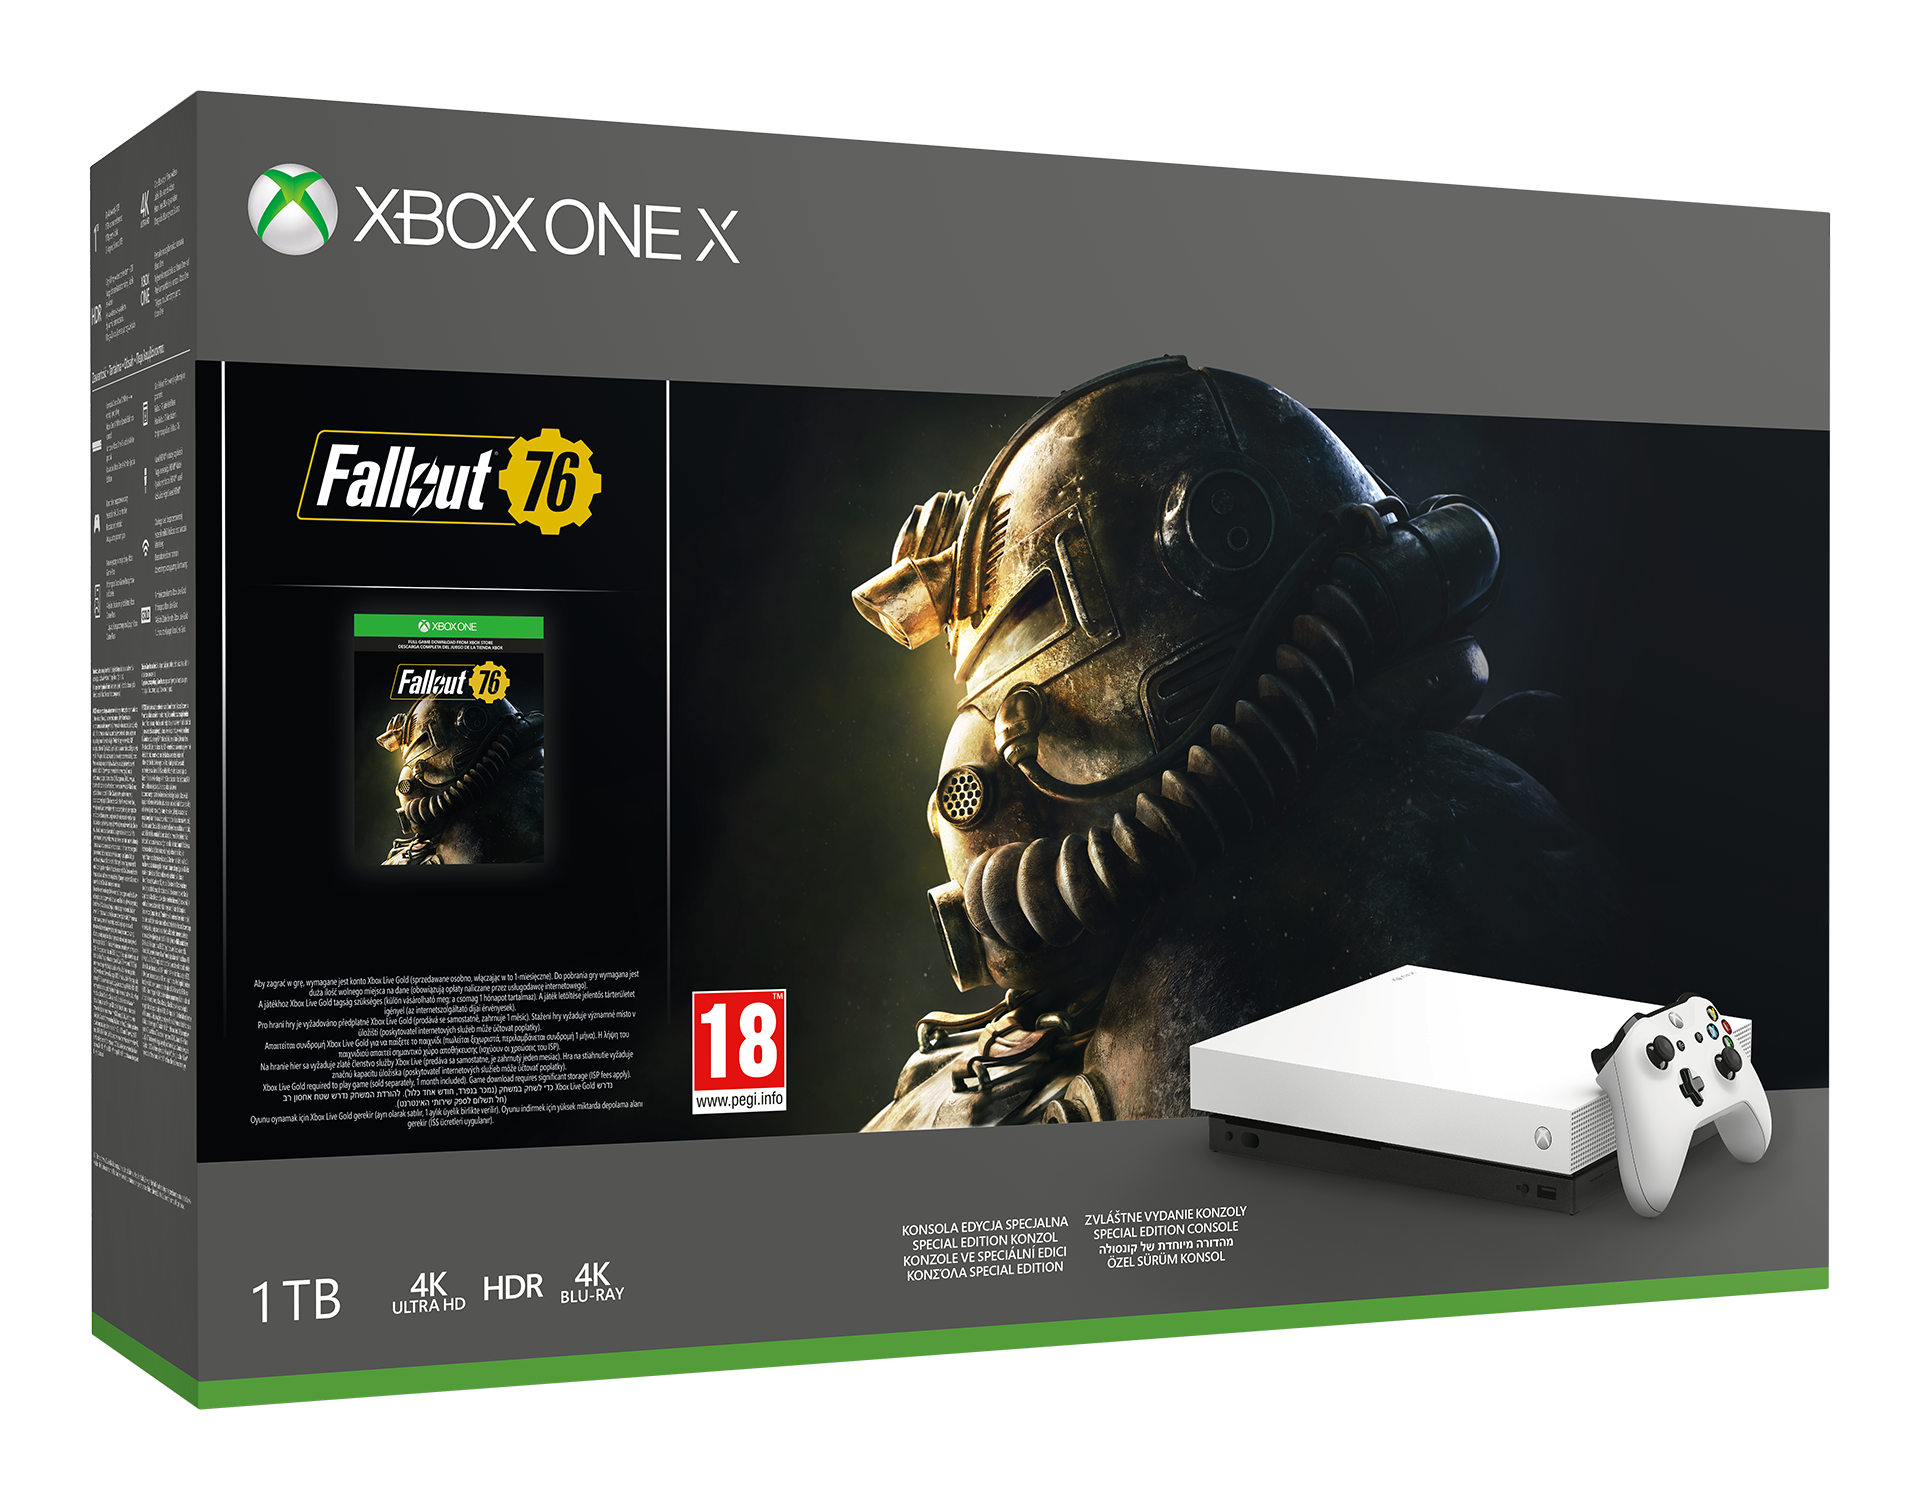 Xbox One X 1 TB Robot White Special Edition + Fallout 76+Gears of War 4 Bundle